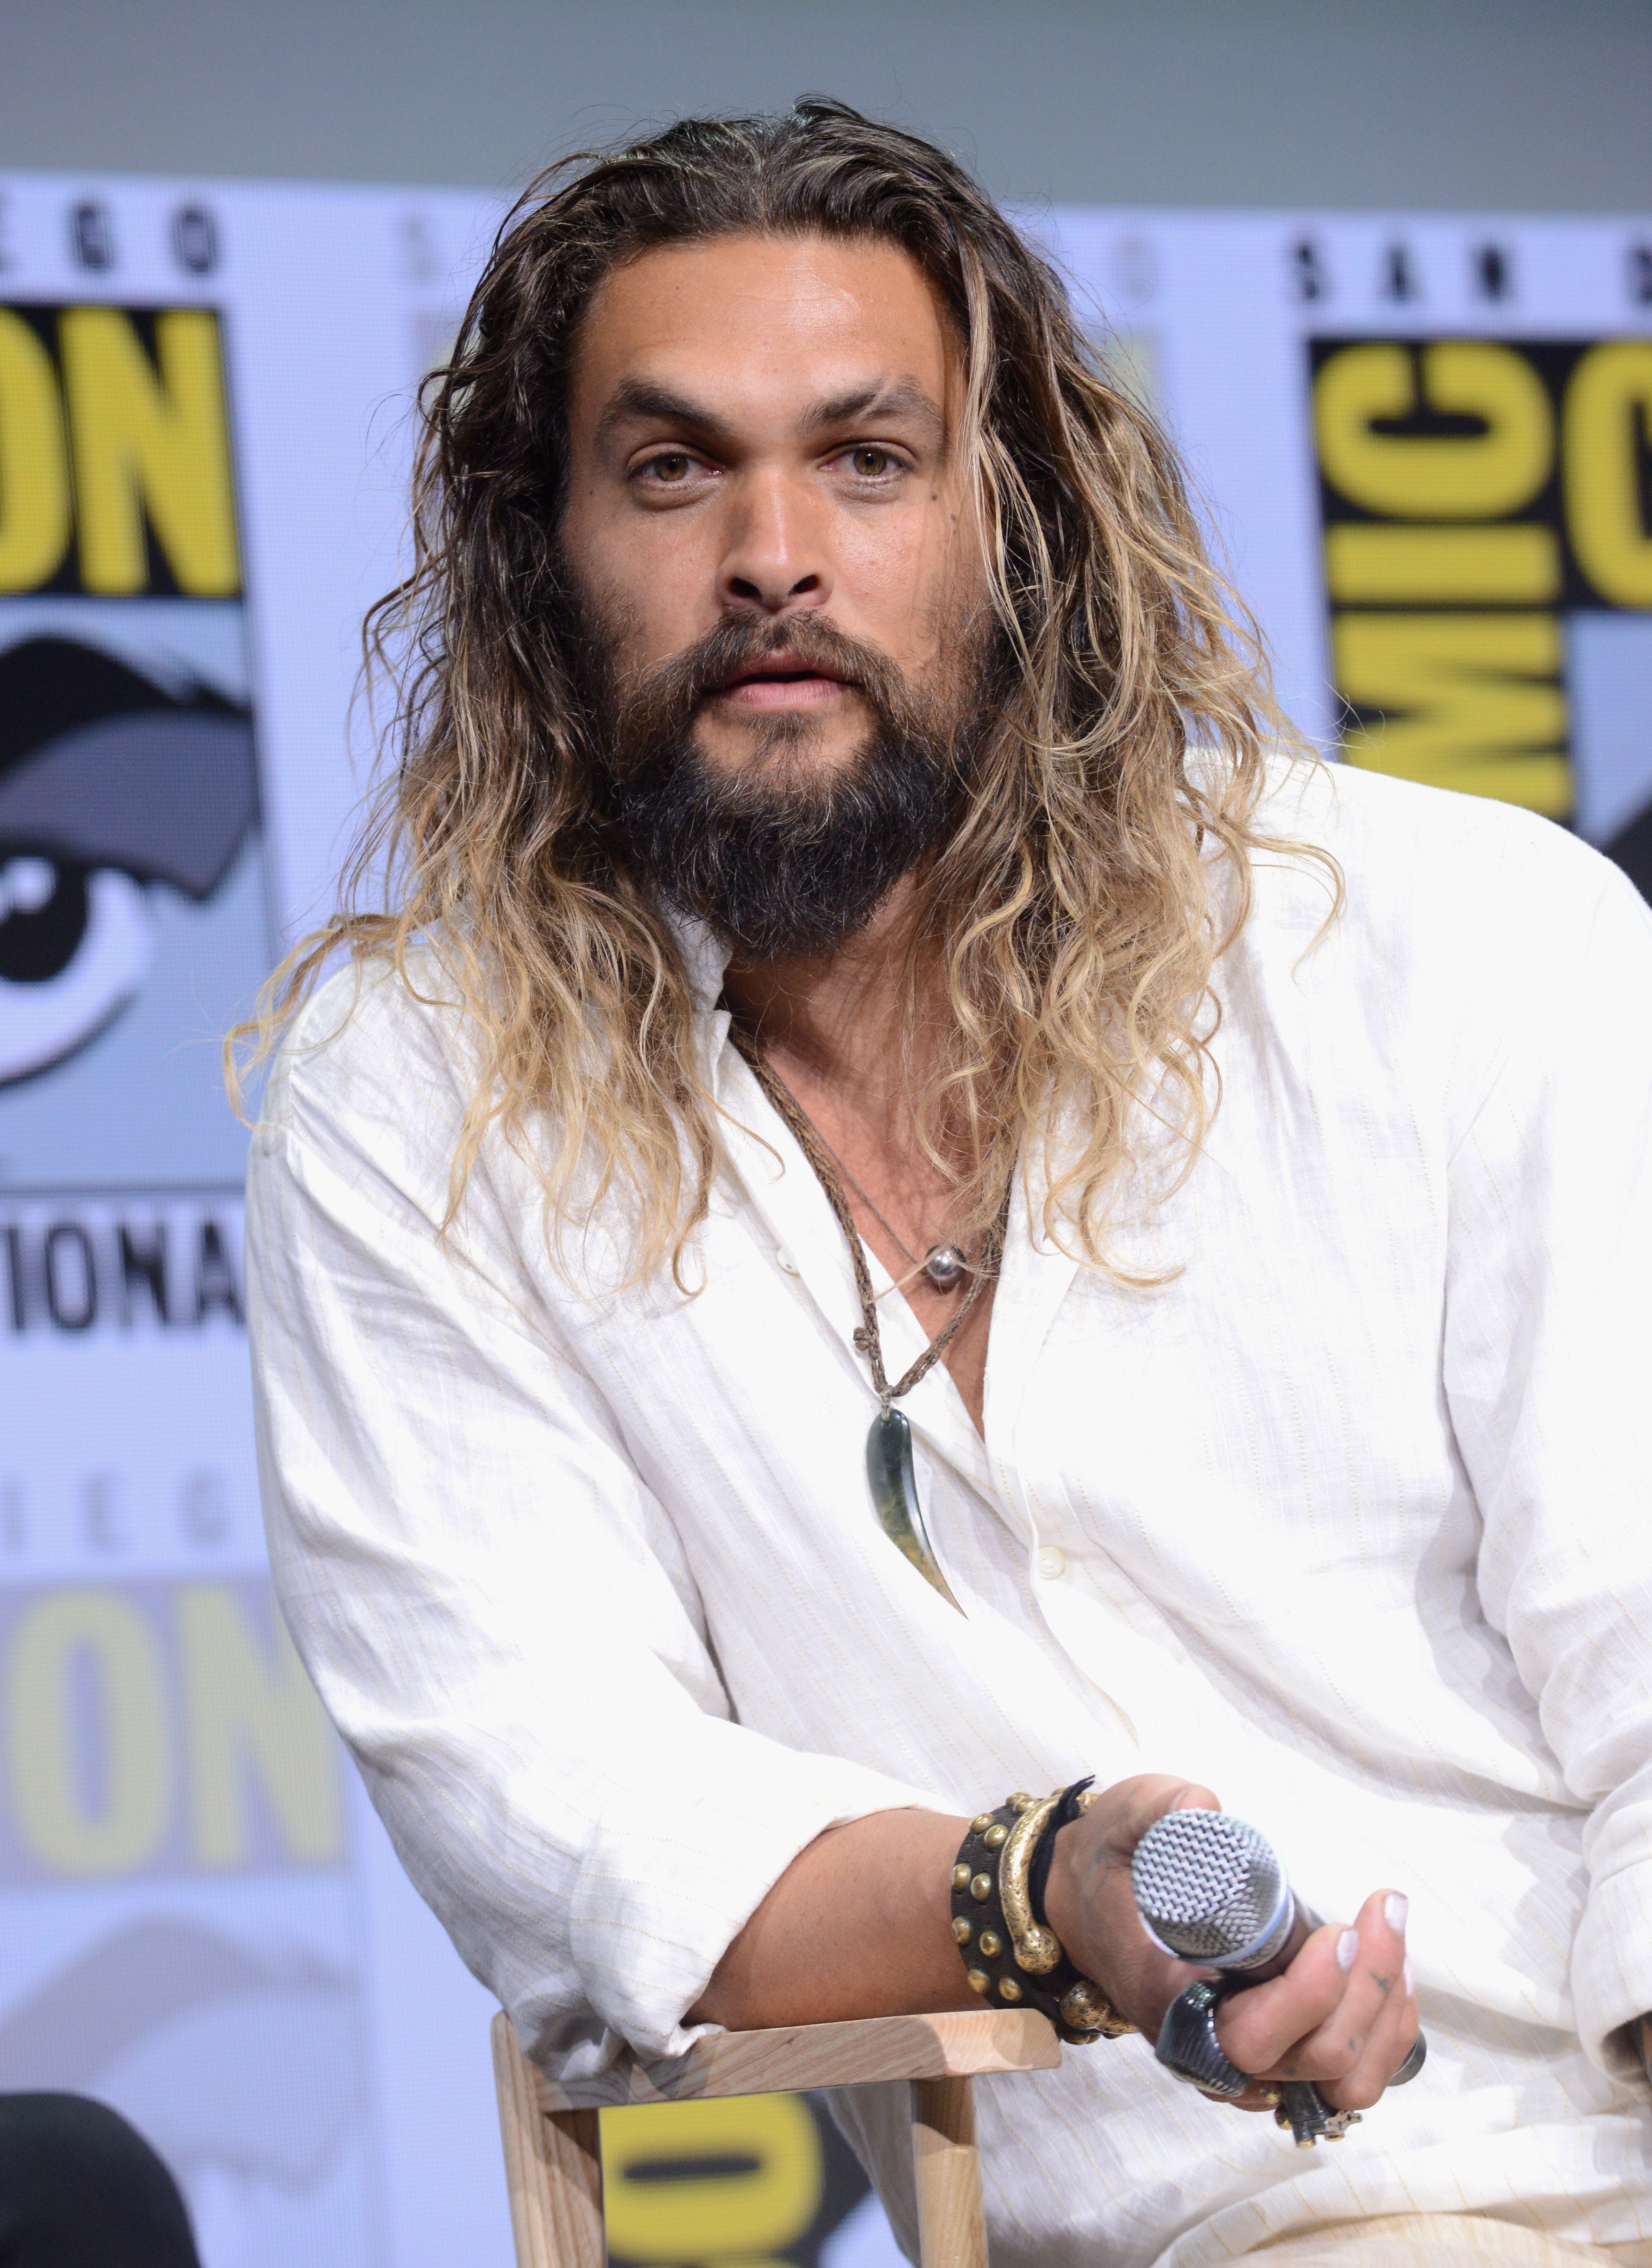 Jason Momoa Apologises After Making 'Unacceptable' 'Game Of Thrones' Rape